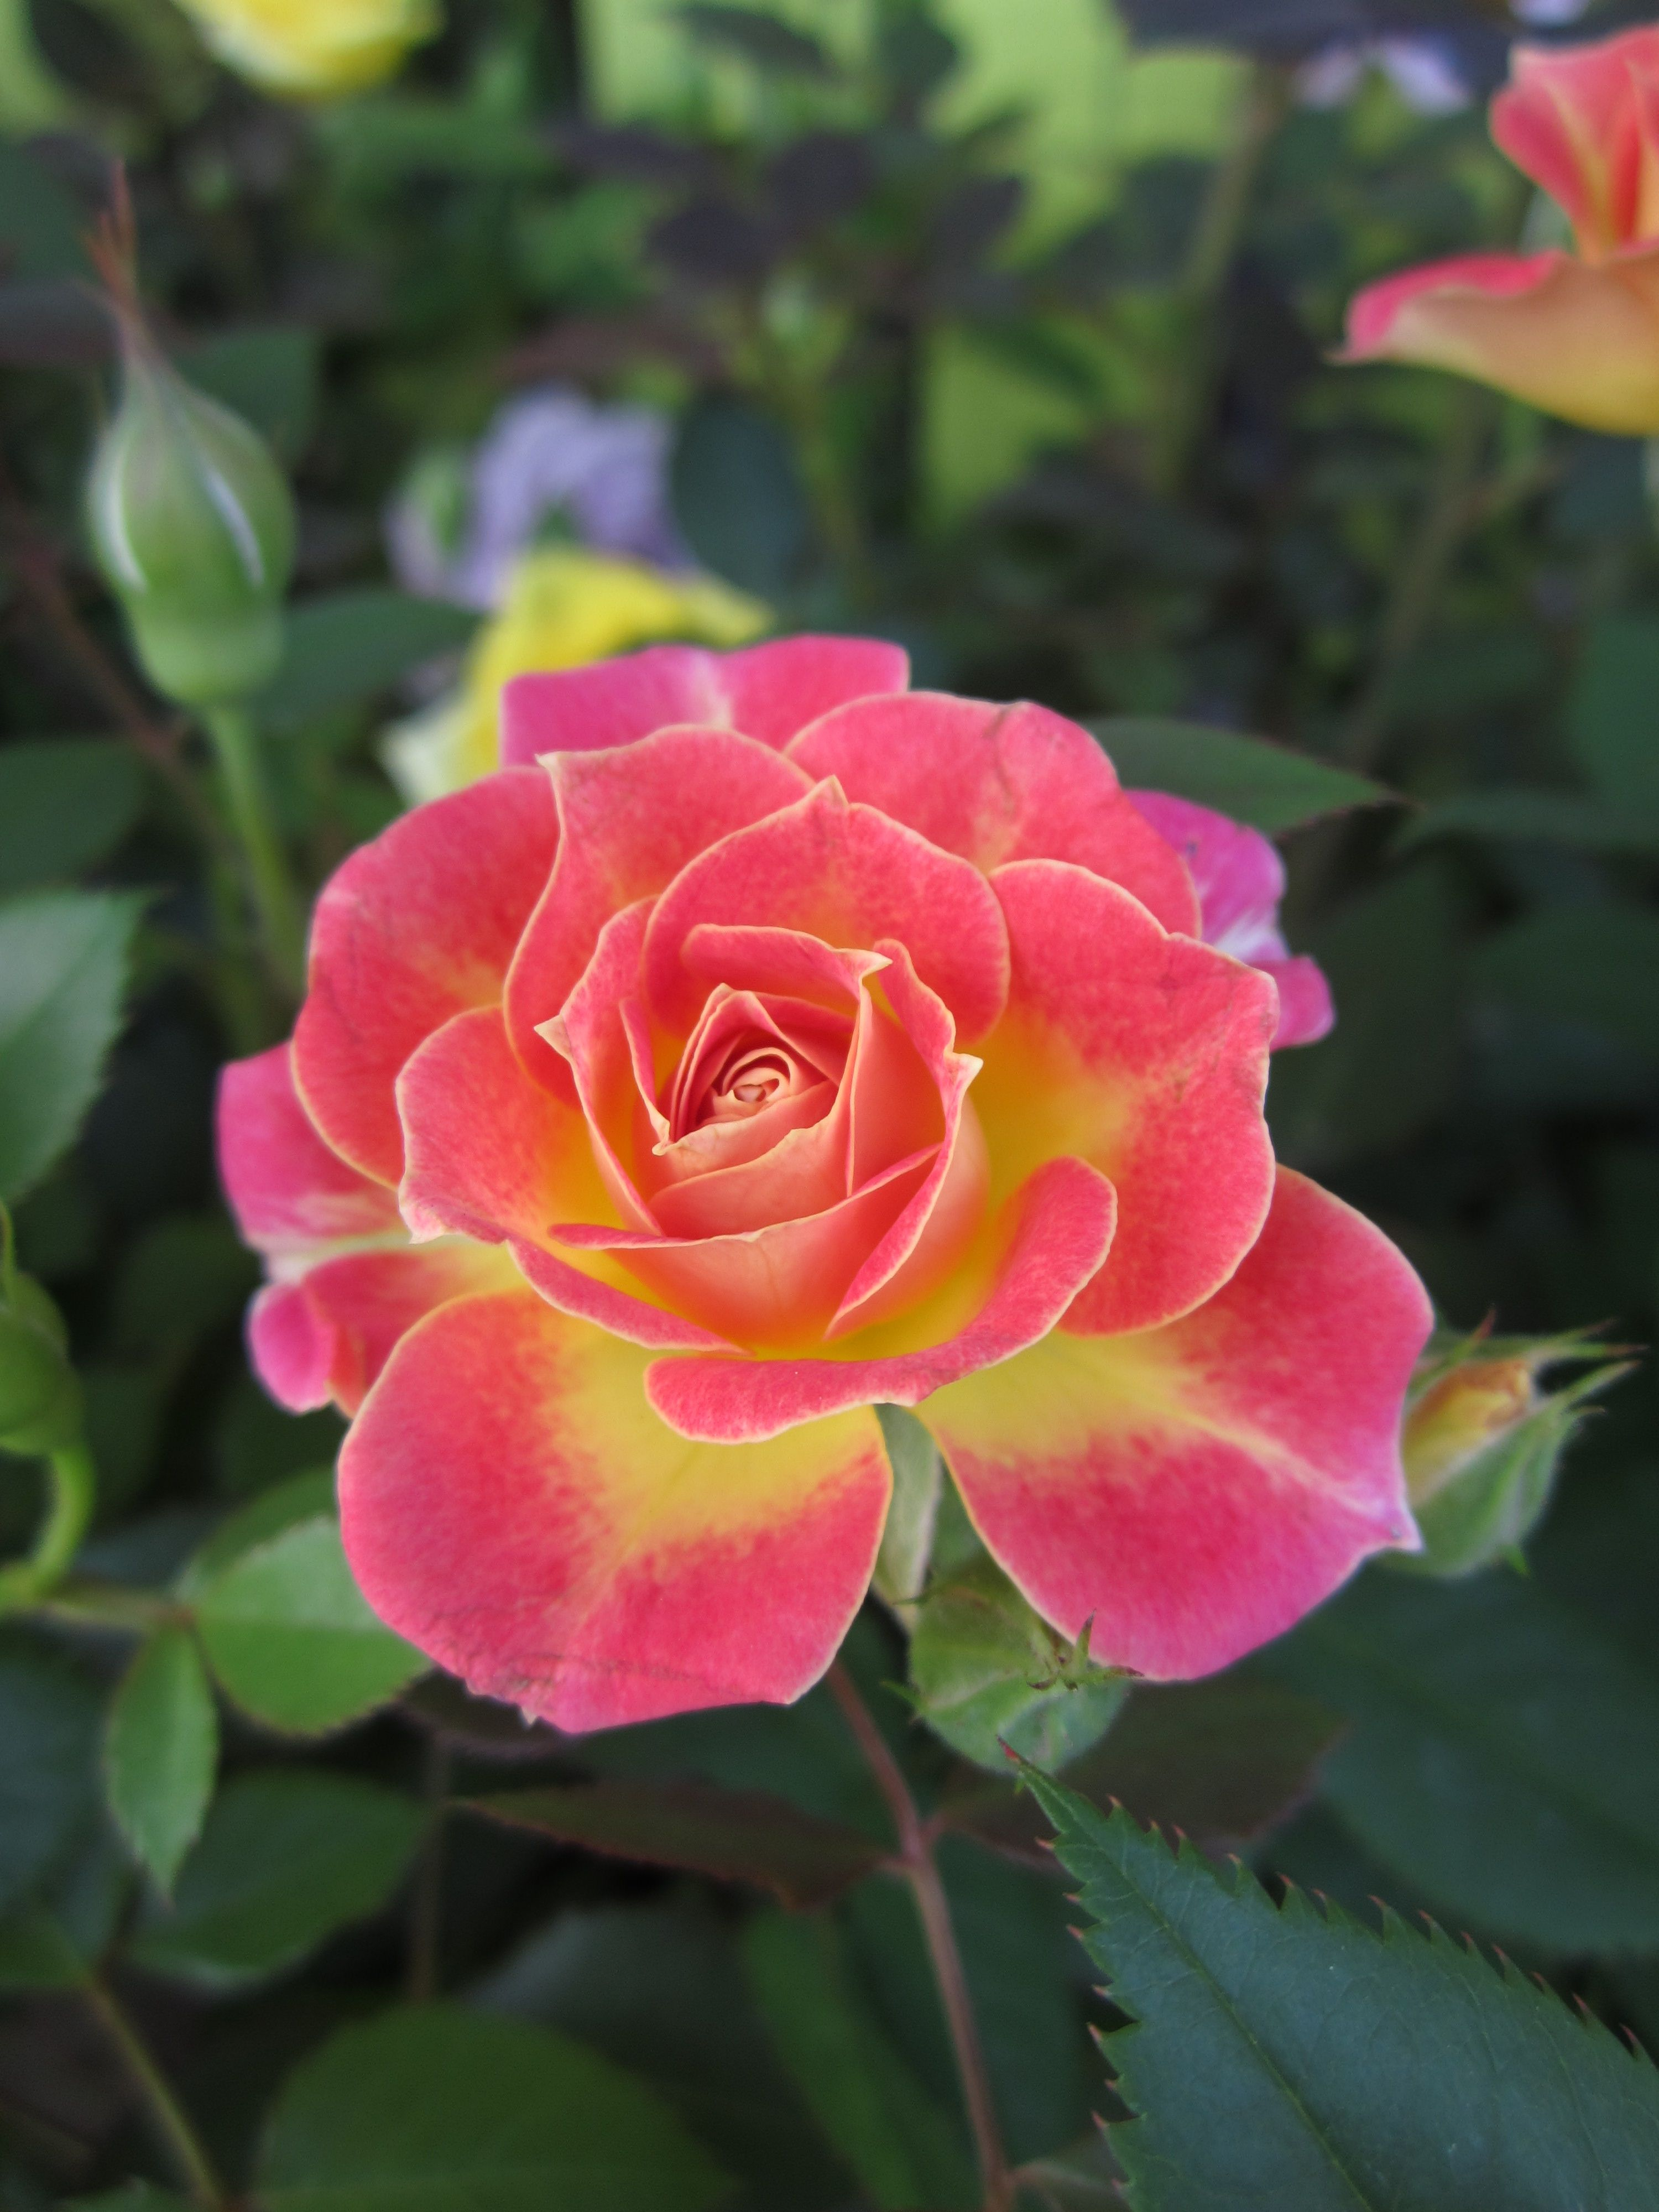 Mini Roses Enjoy The Beauty Of Miniature Roses All Summer Long